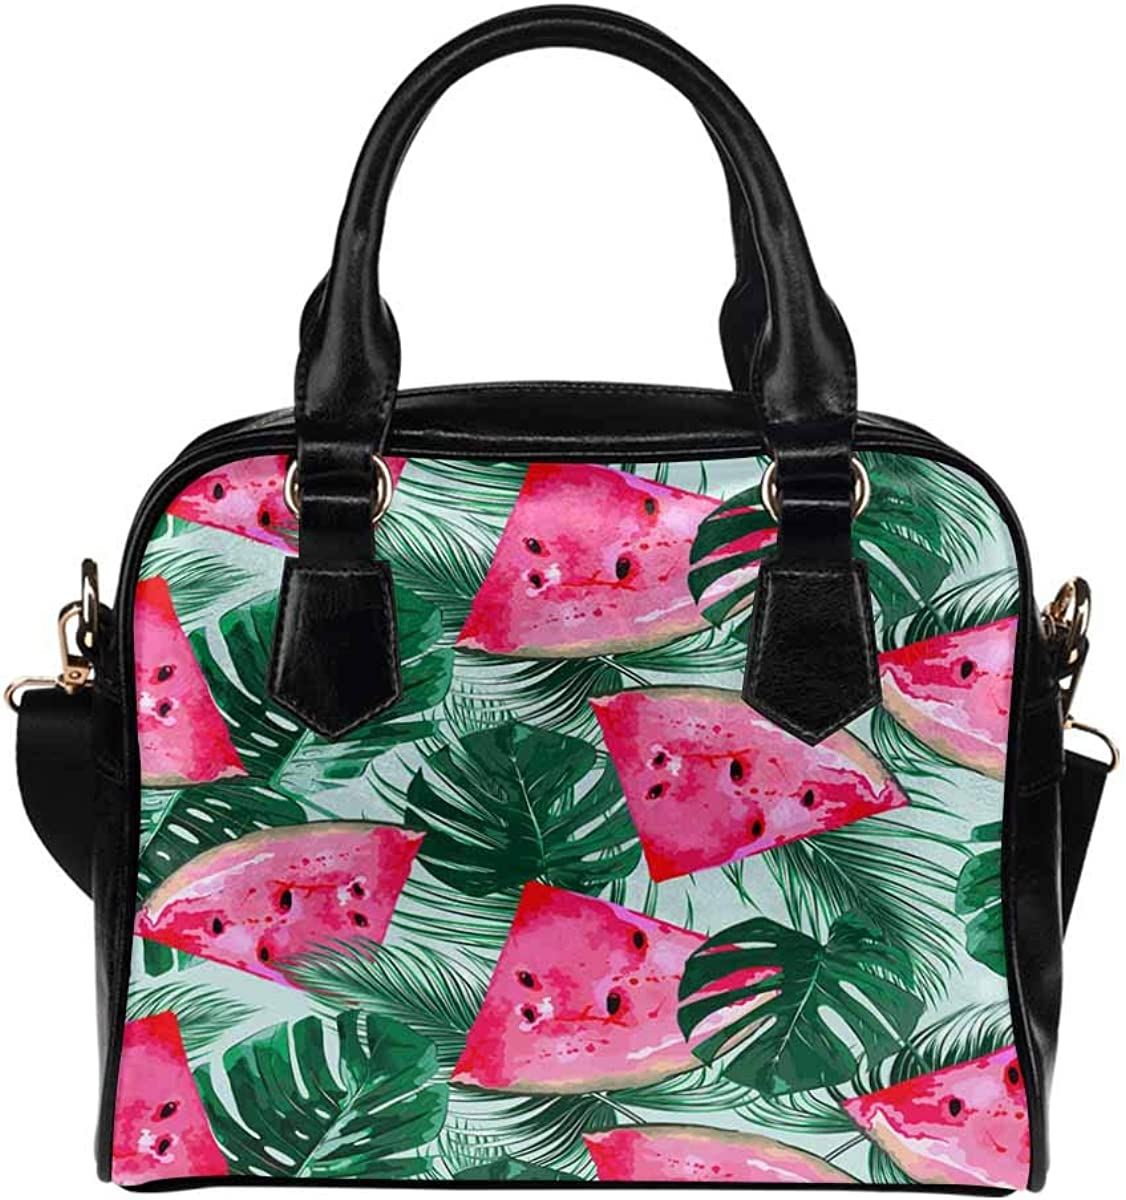 INTERESTPRINT Watercolor Watermelon Leaves Leather 5 popular PU Limited price Lady Purse